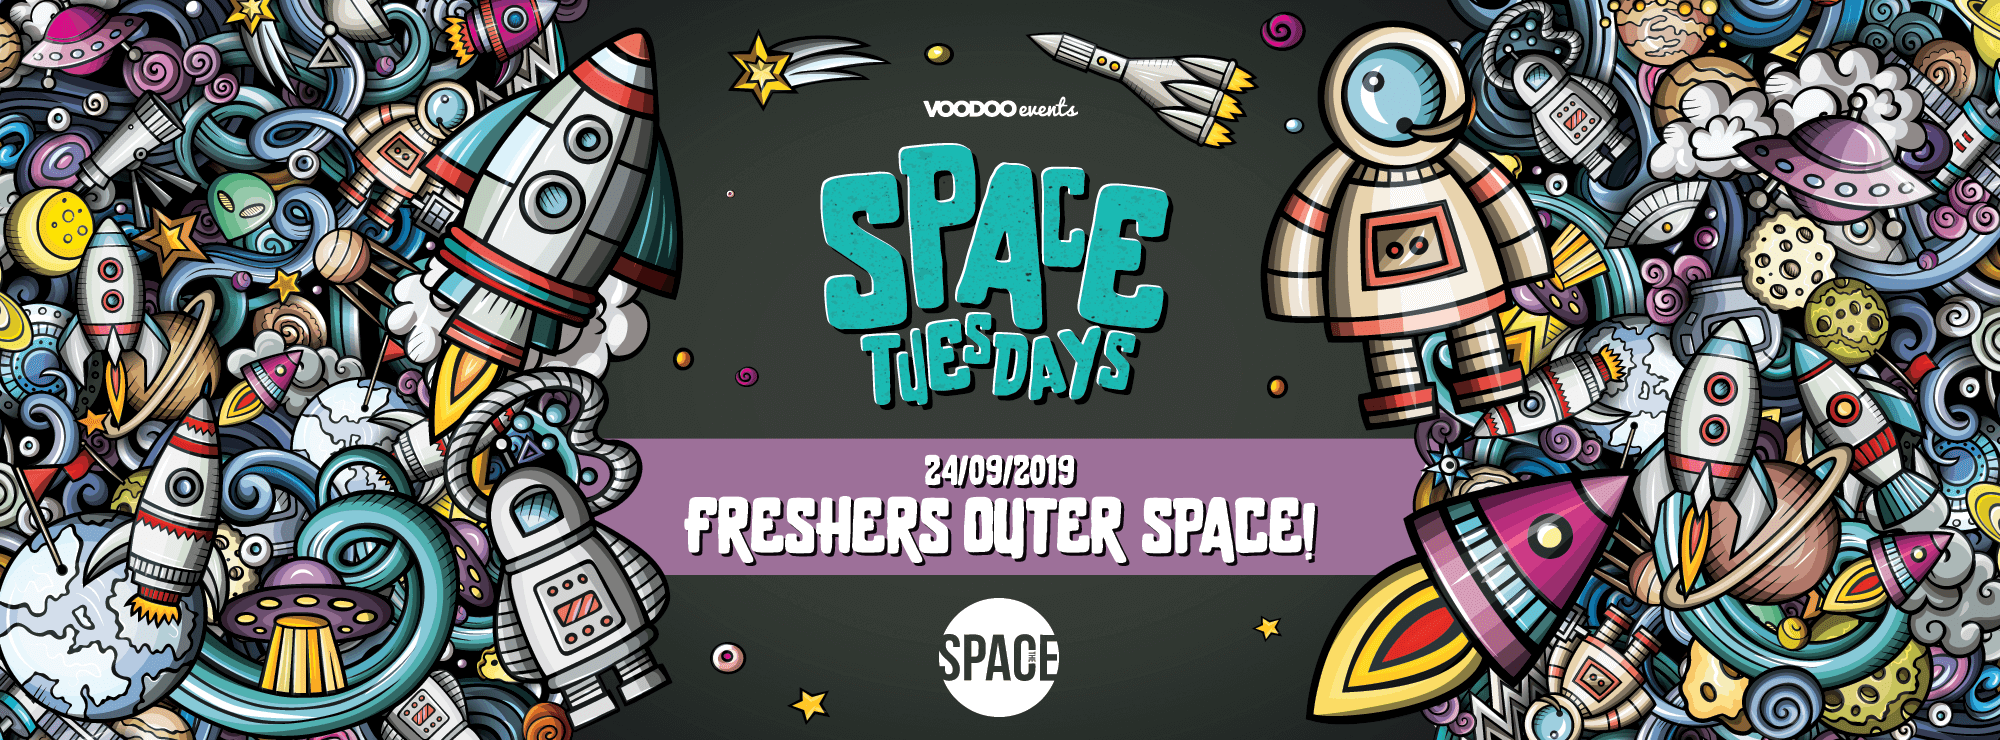 Space Tuesdays : Leeds – Freshers Outer Space